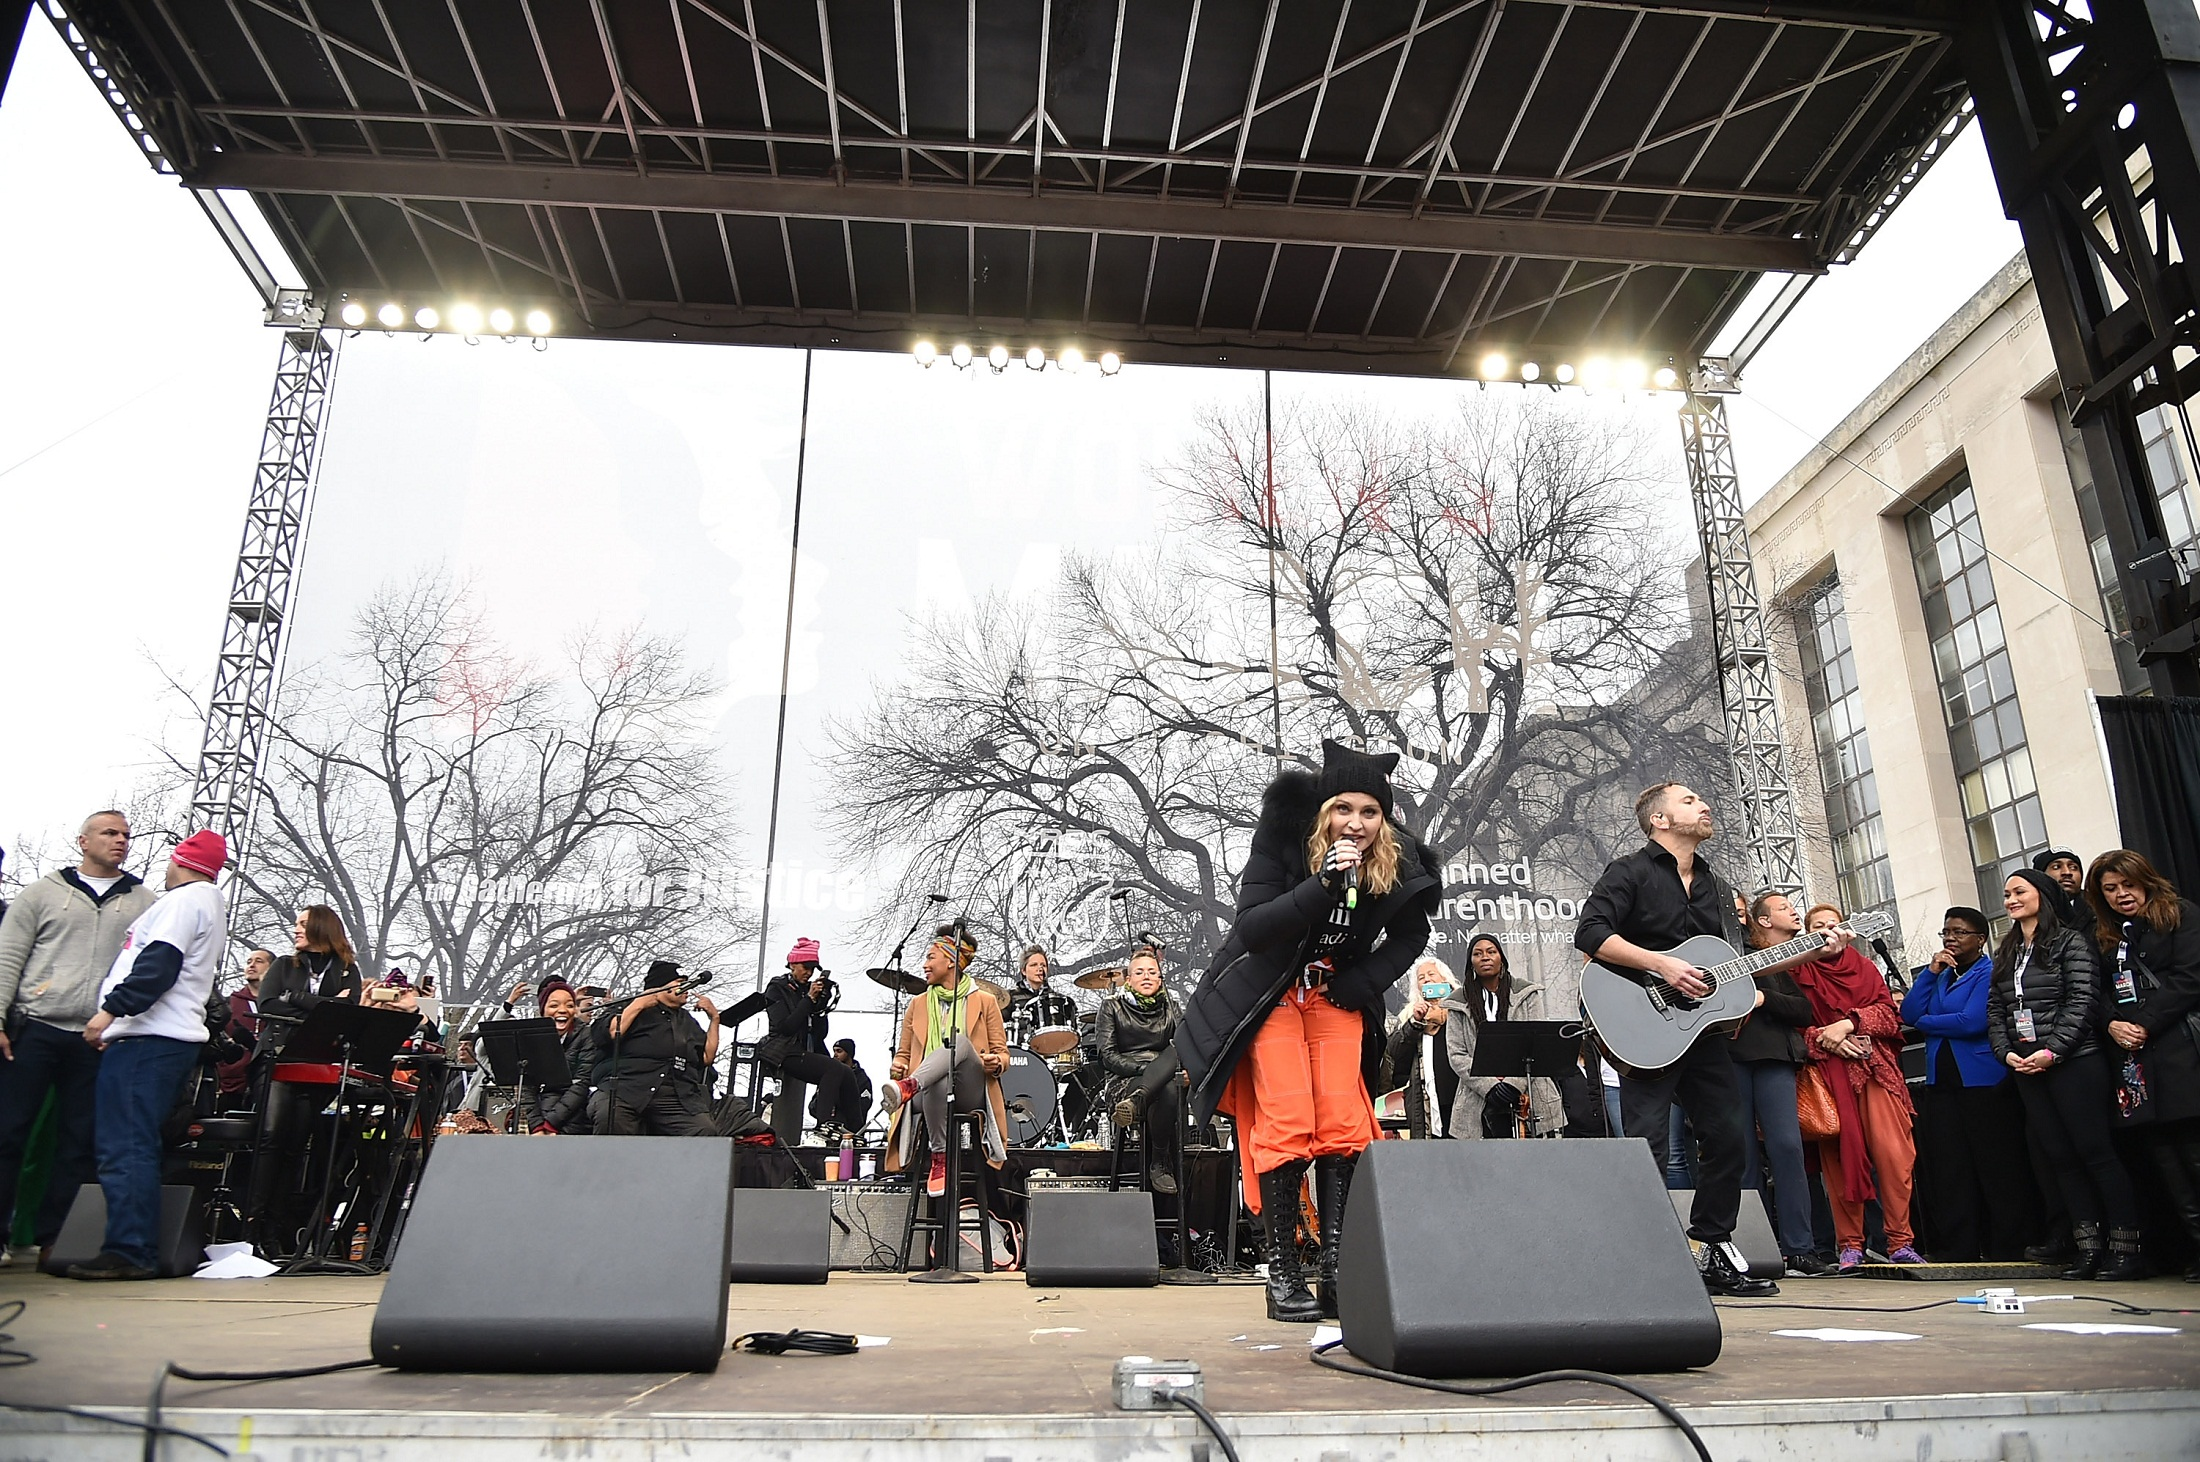 WASHINGTON, DC - JANUARY 21: Madonna performs onstage during the Women's March on Washington on January 21, 2017 in Washington, DC.   Theo Wargo/Getty Images/AFP